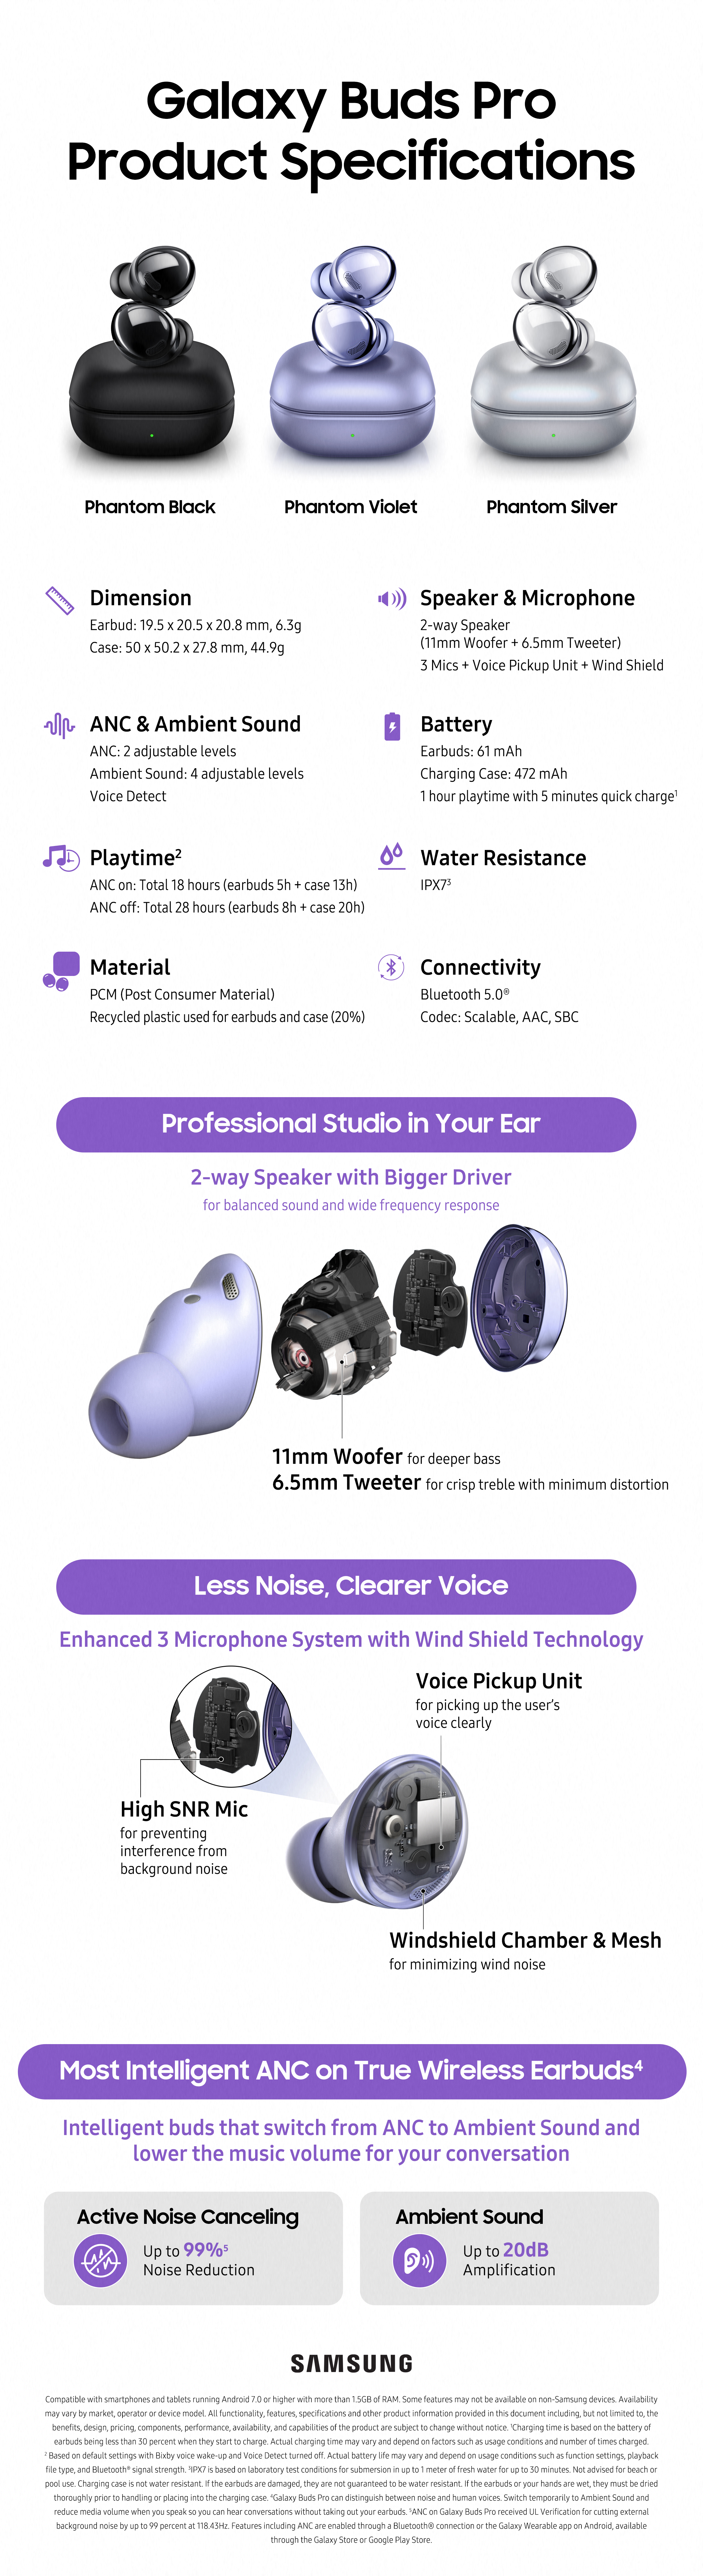 Galaxy Buds Pro Product Specifications